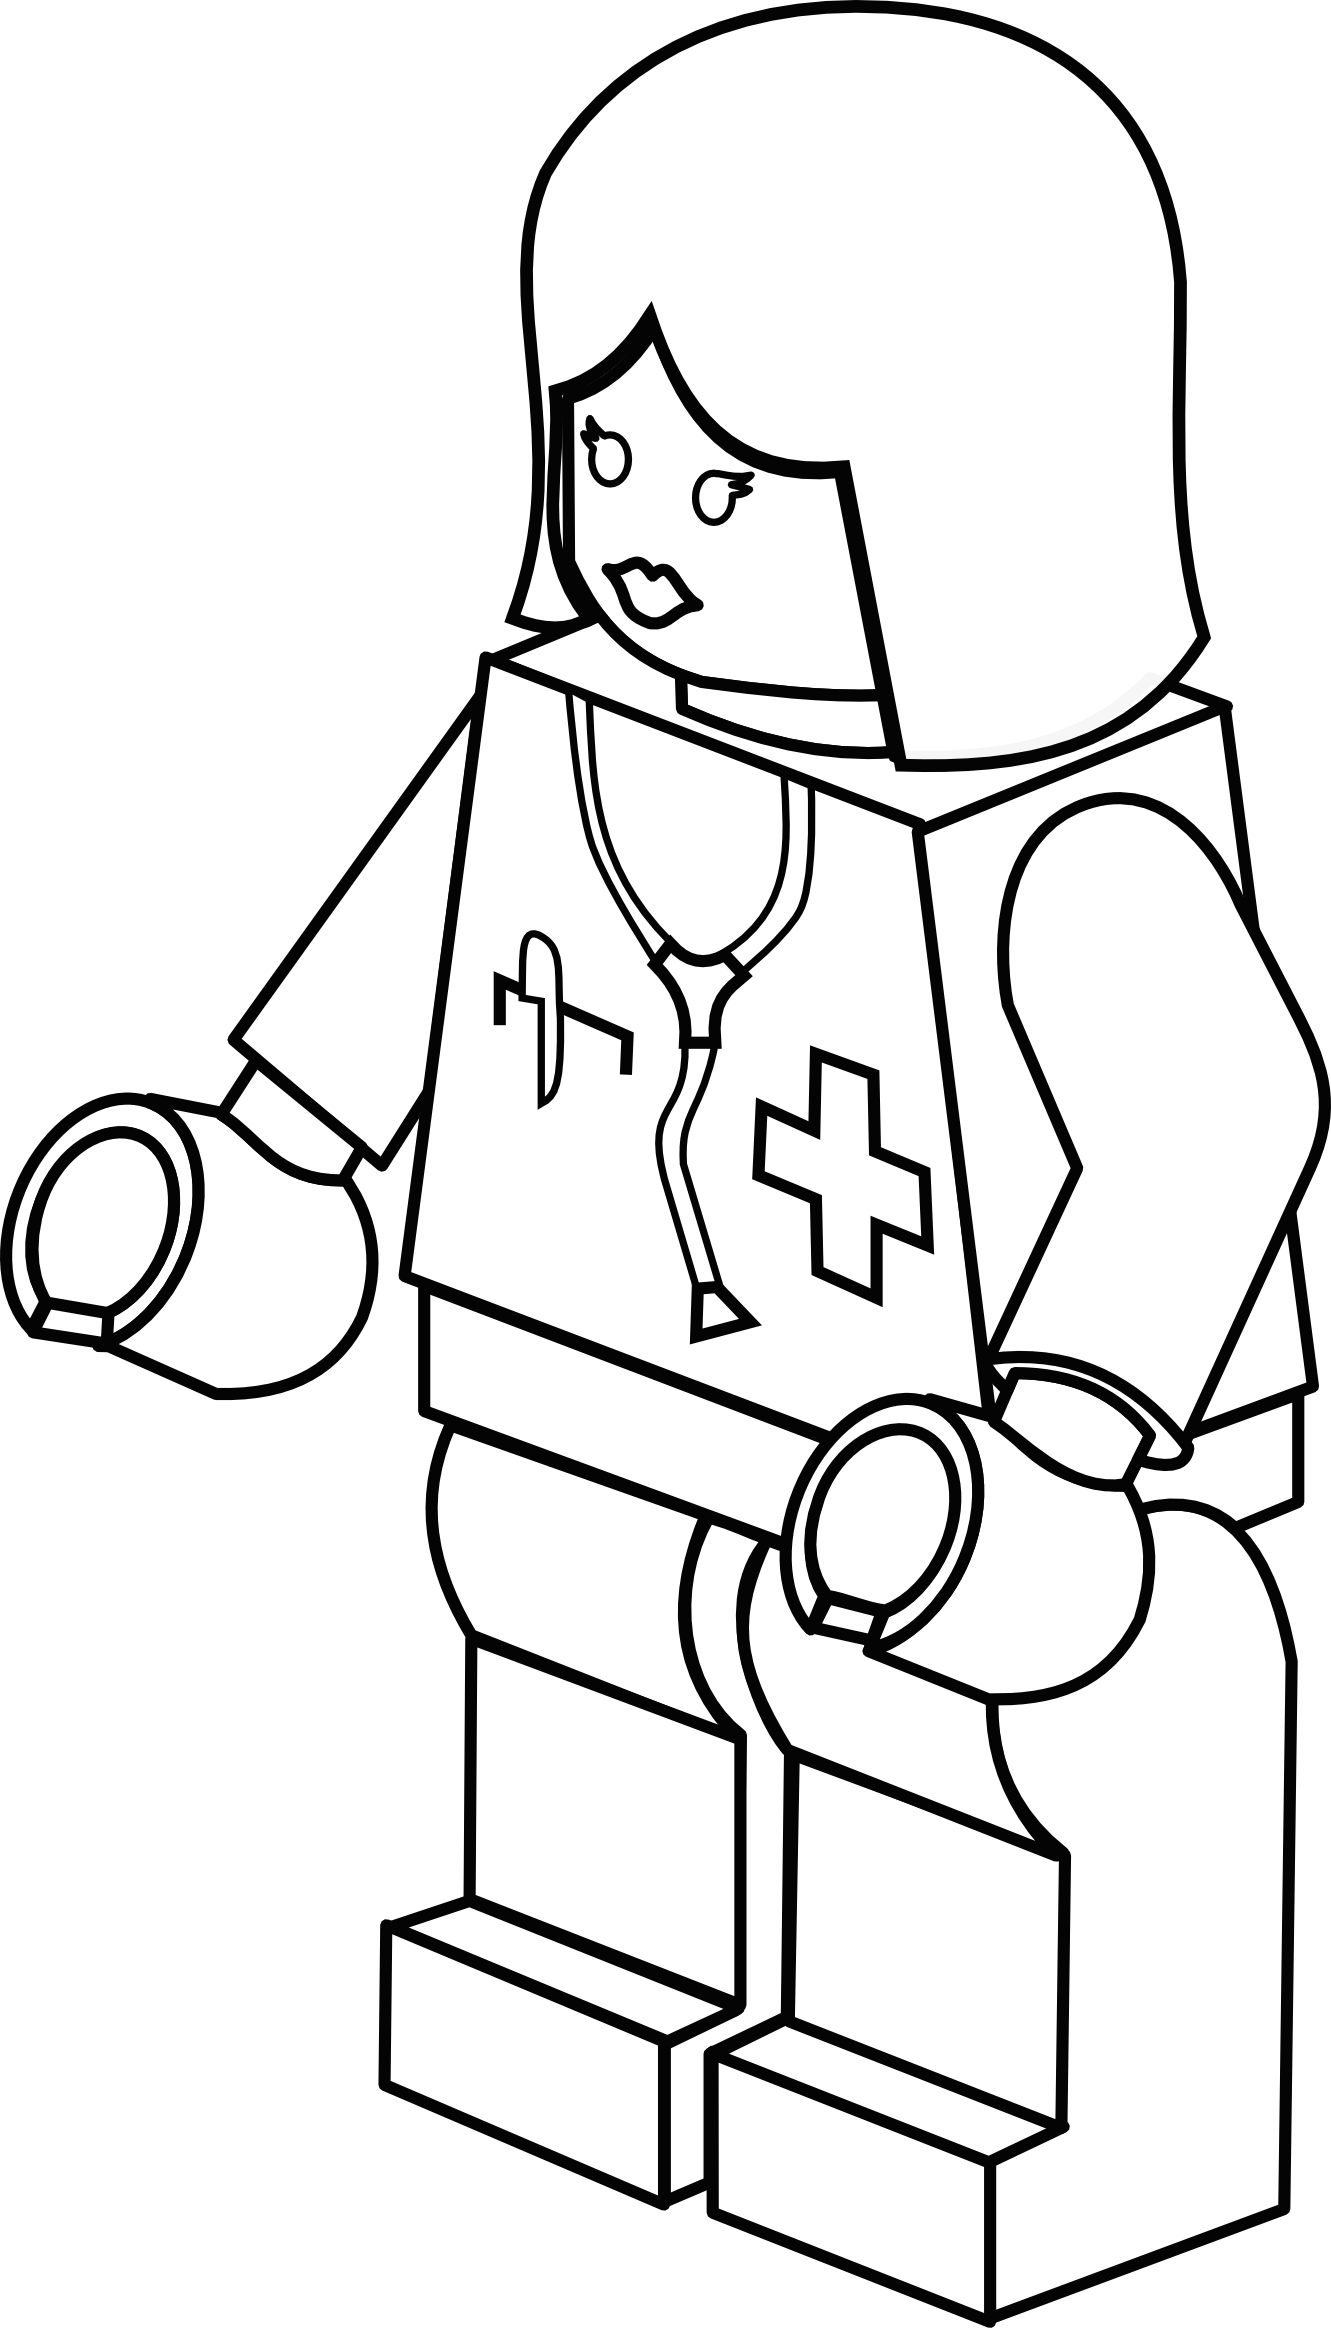 Nurse clipart black and white. Doctor panda free images